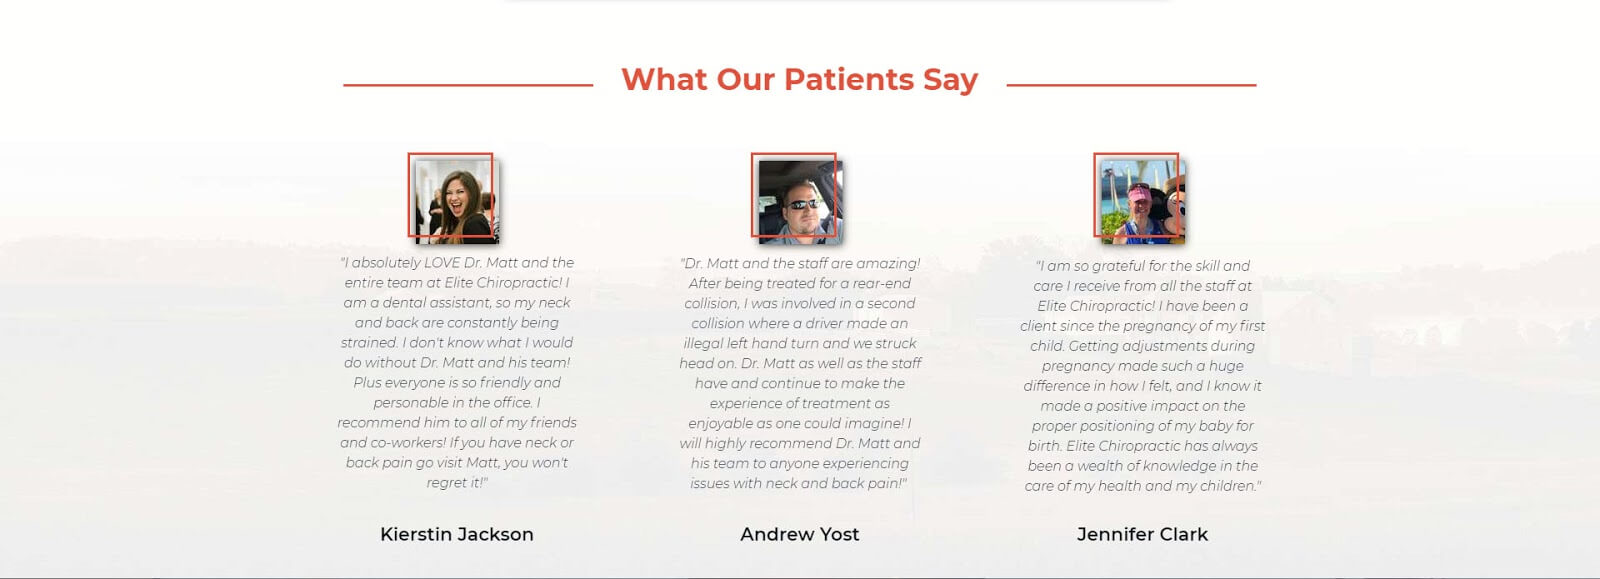 landing page layout testimonials section